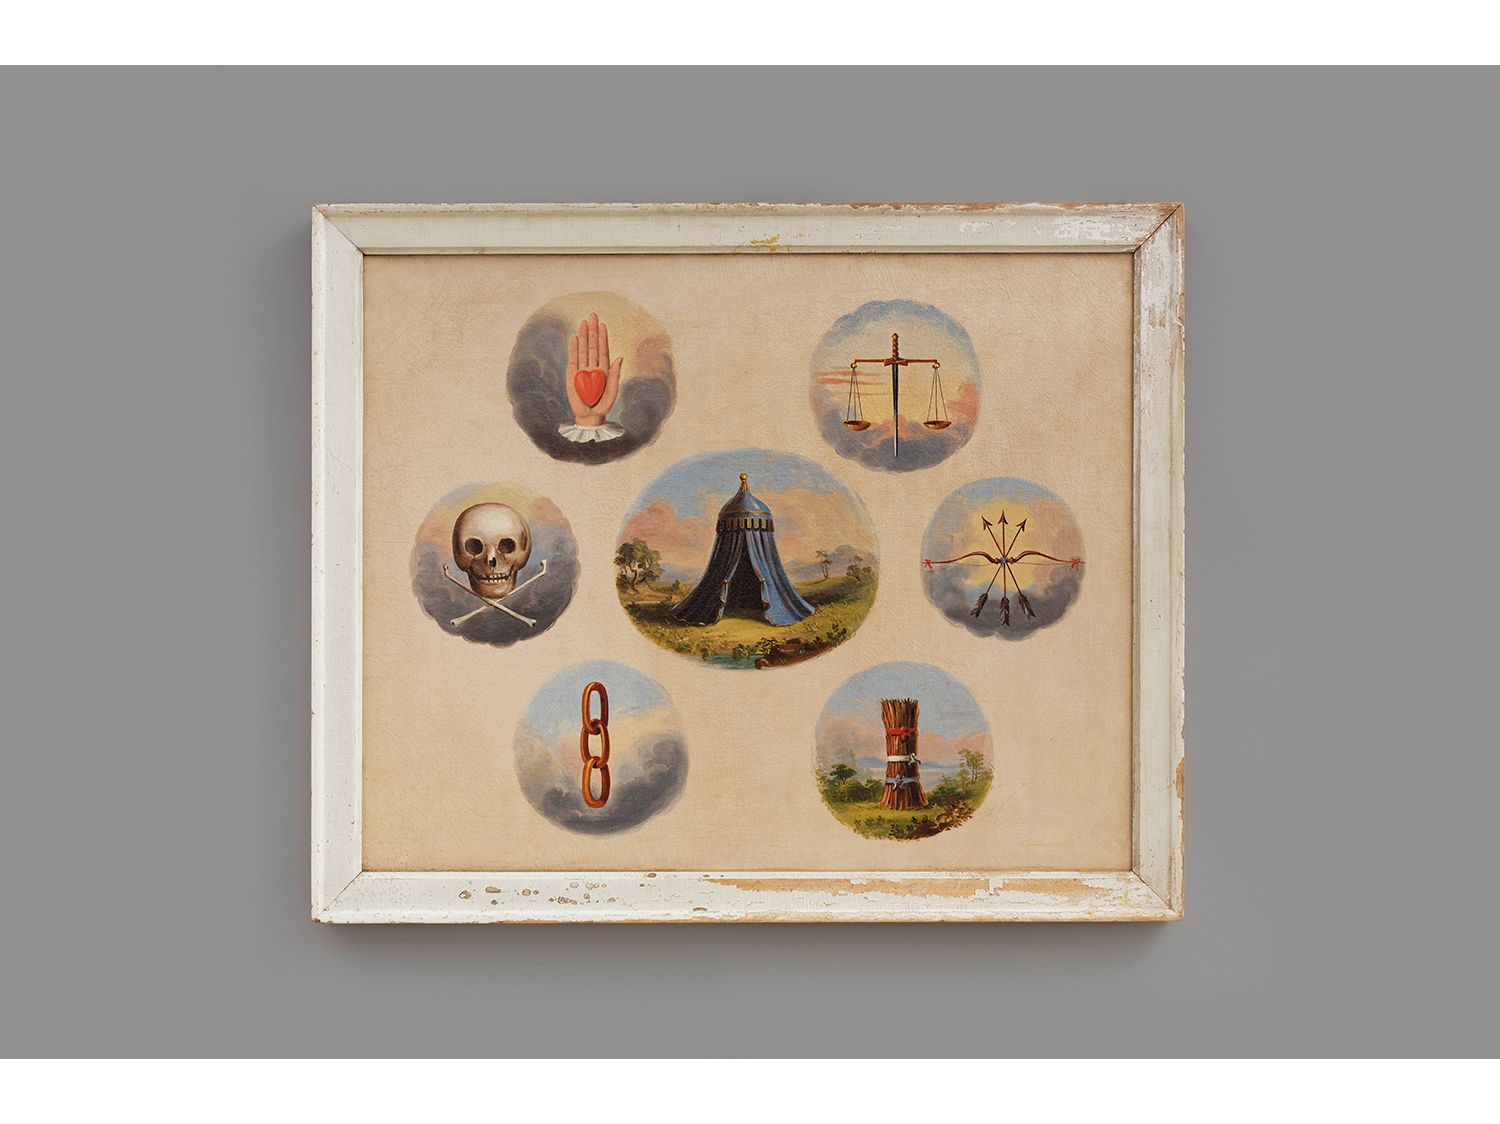 Independent Order of Odd Fellows Tracing Board, c. 1850–1900